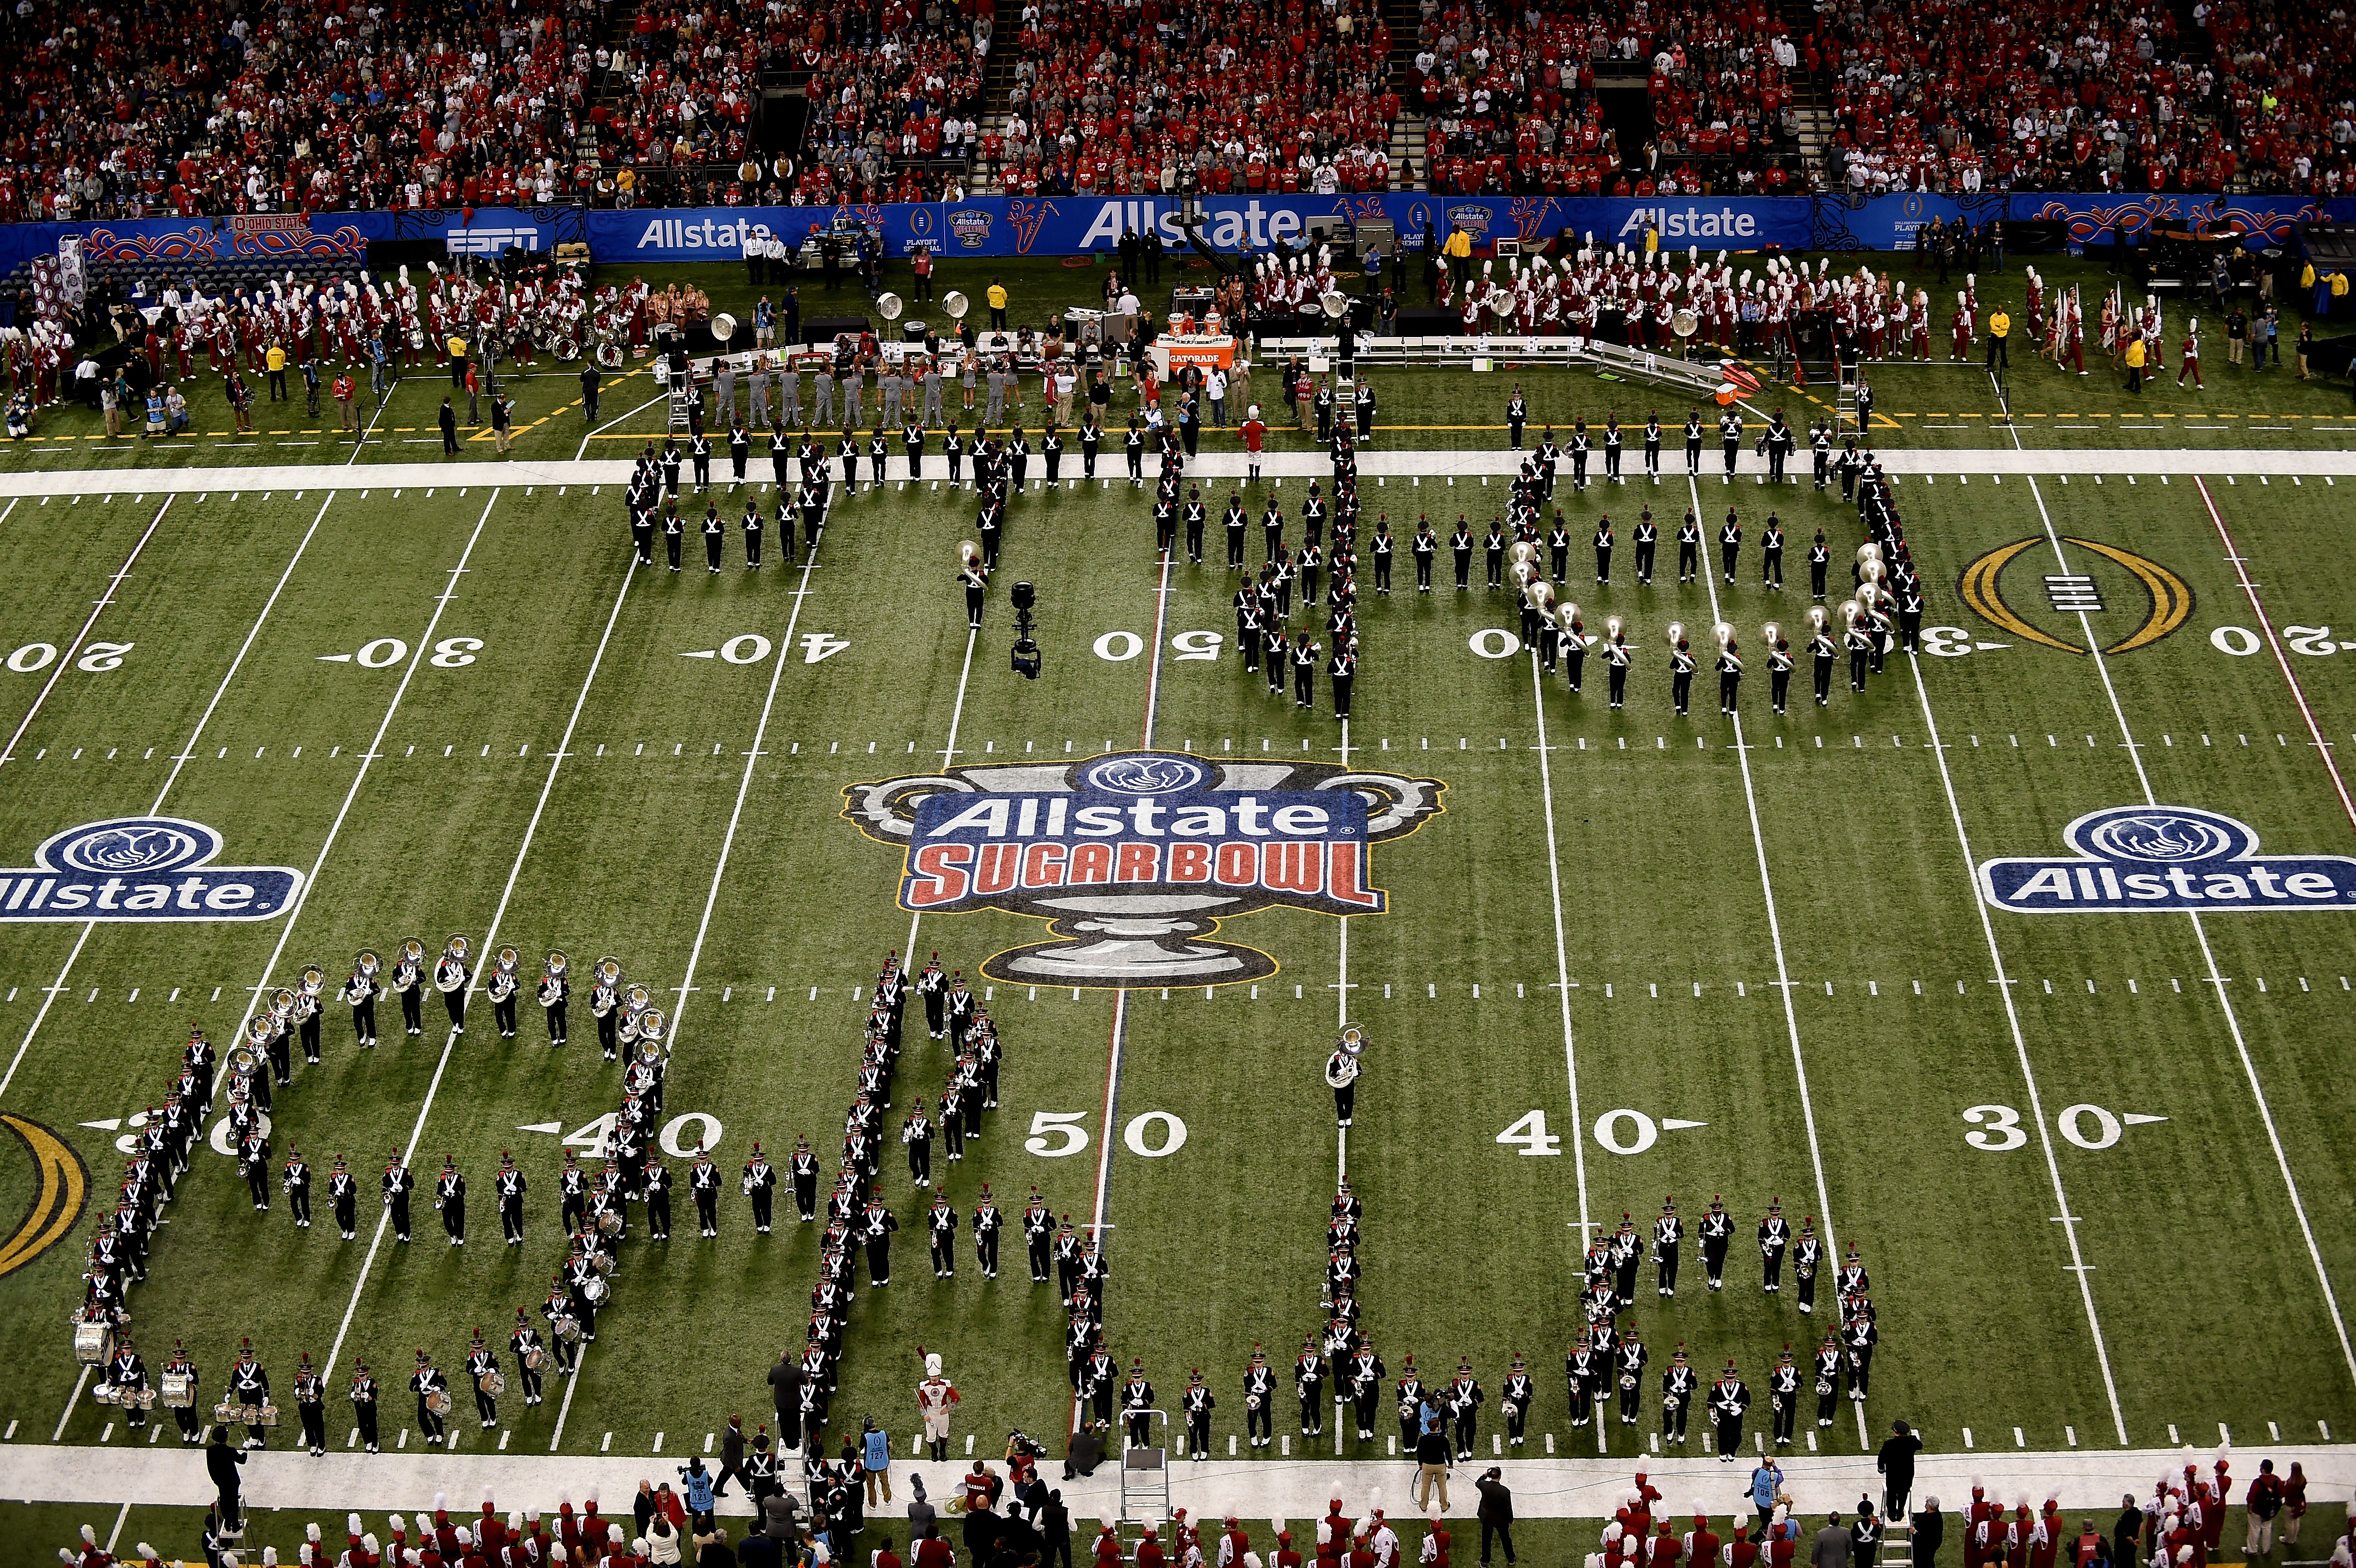 Ohio State marching band performs at the Sugar Bowl.